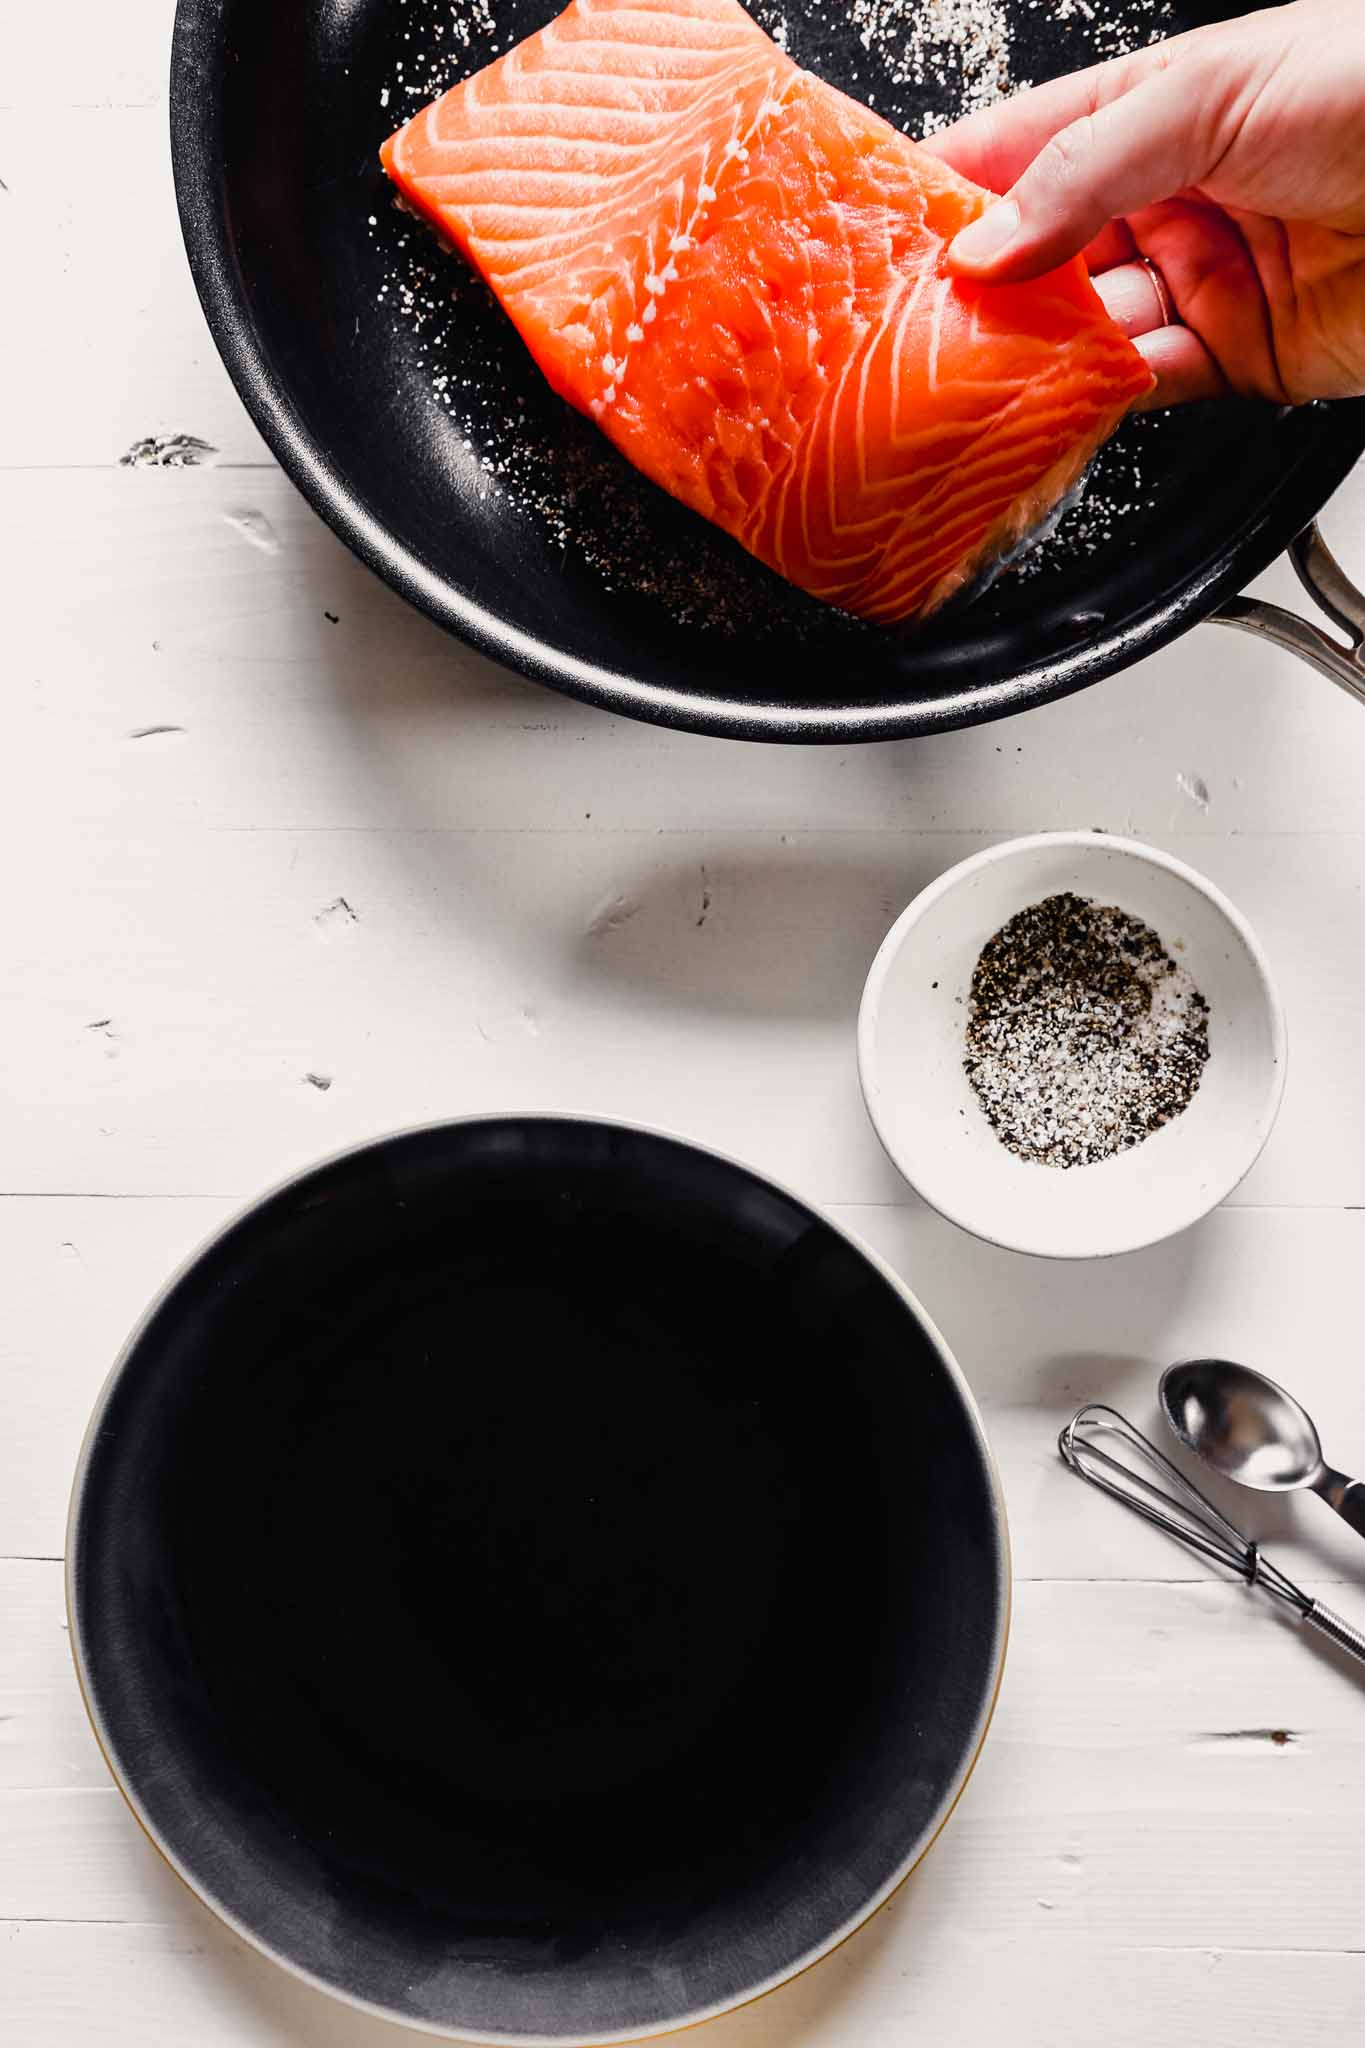 Photo of someone placing a filet of salmon into a nonstick skillet sprinkled with salt and pepper.